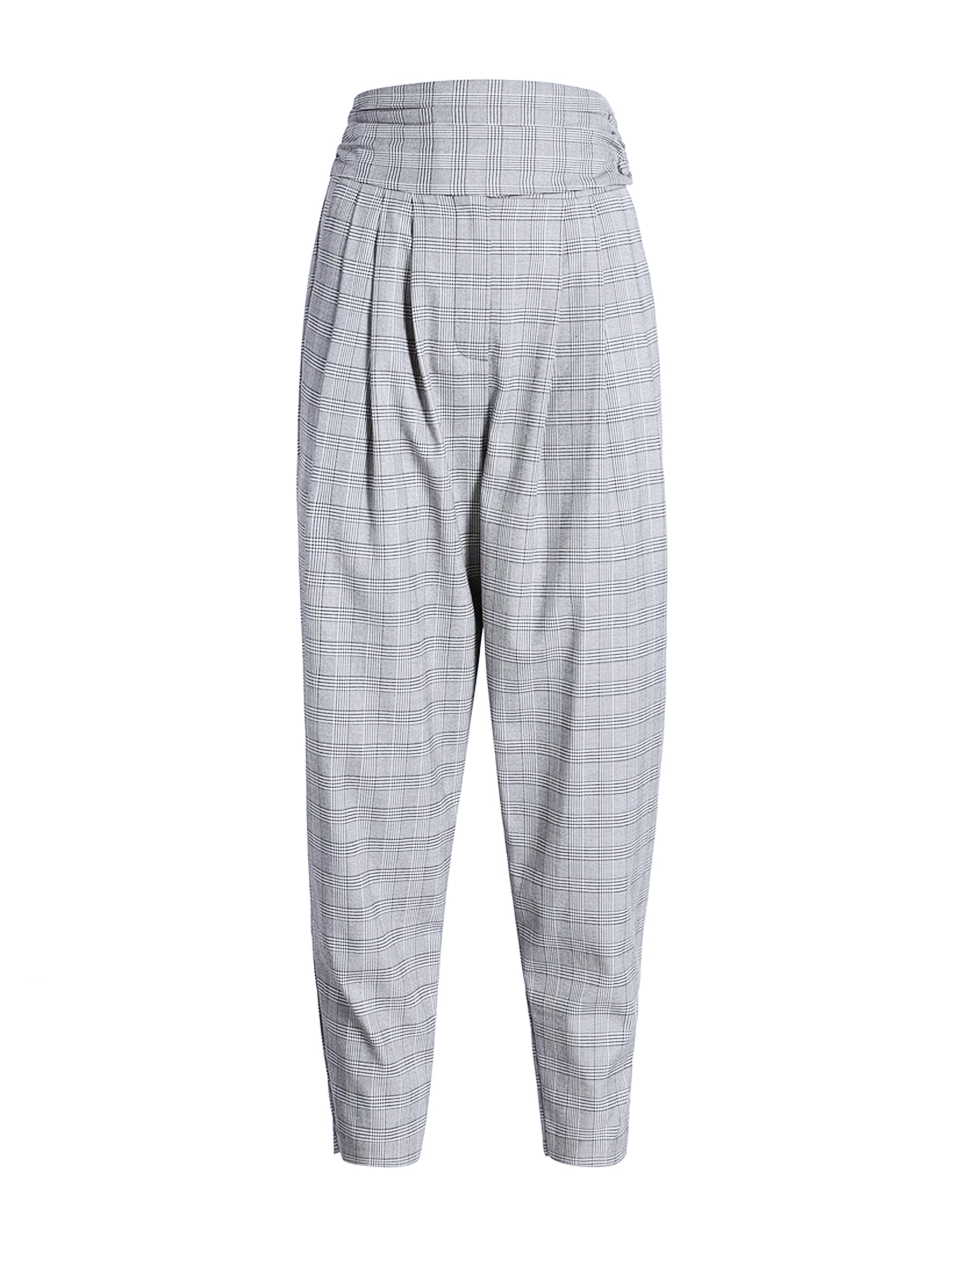 CINQ A SEPT Serenity Pant in Houndstooth Plaid Product Shot